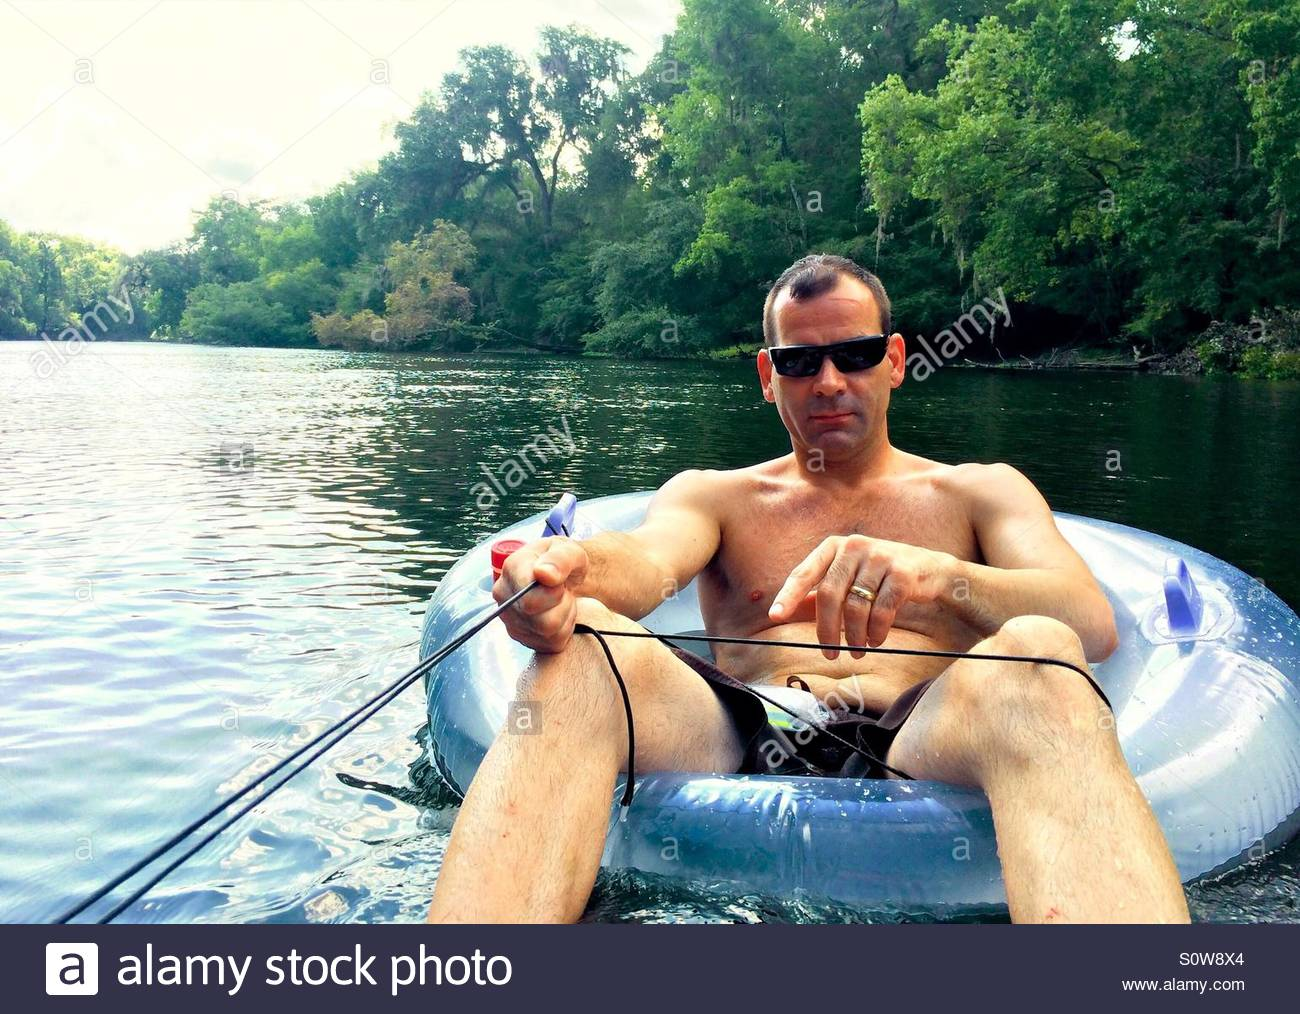 Man floating down the Sante Fe River in an inner tube - Stock Image